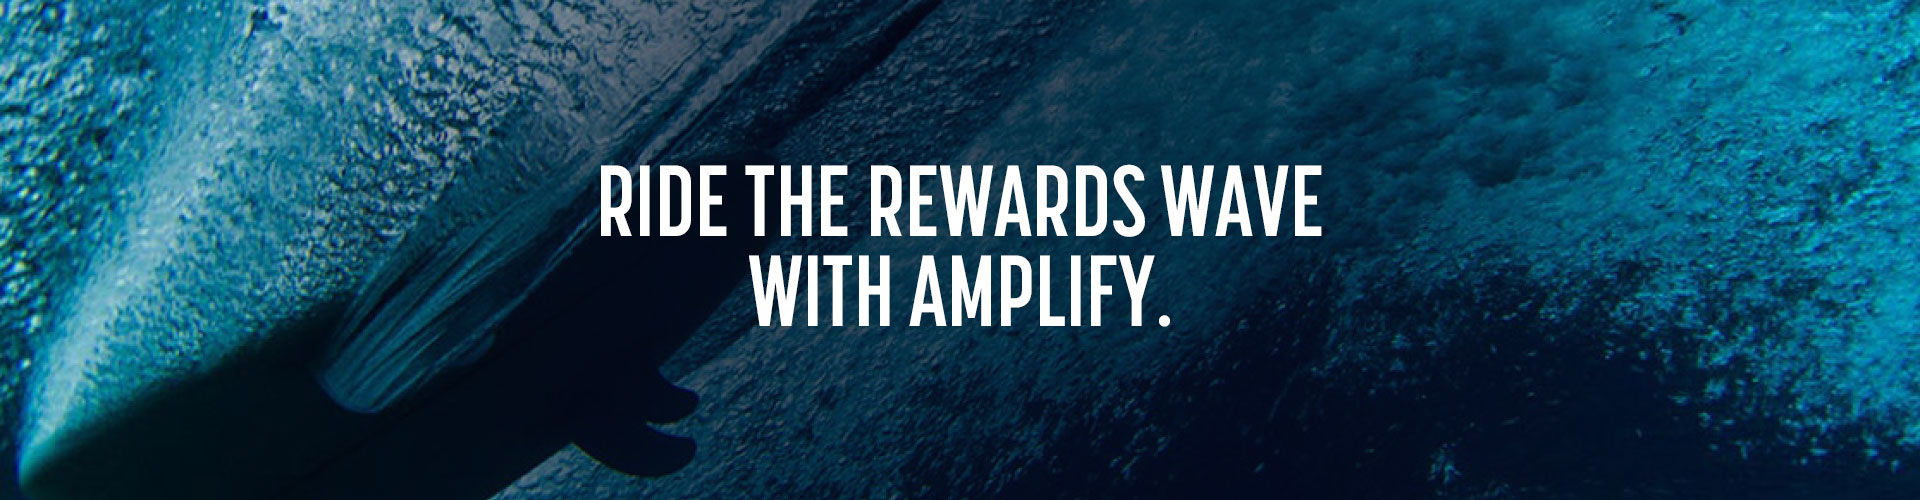 Ride the rewards wave with Amplify.